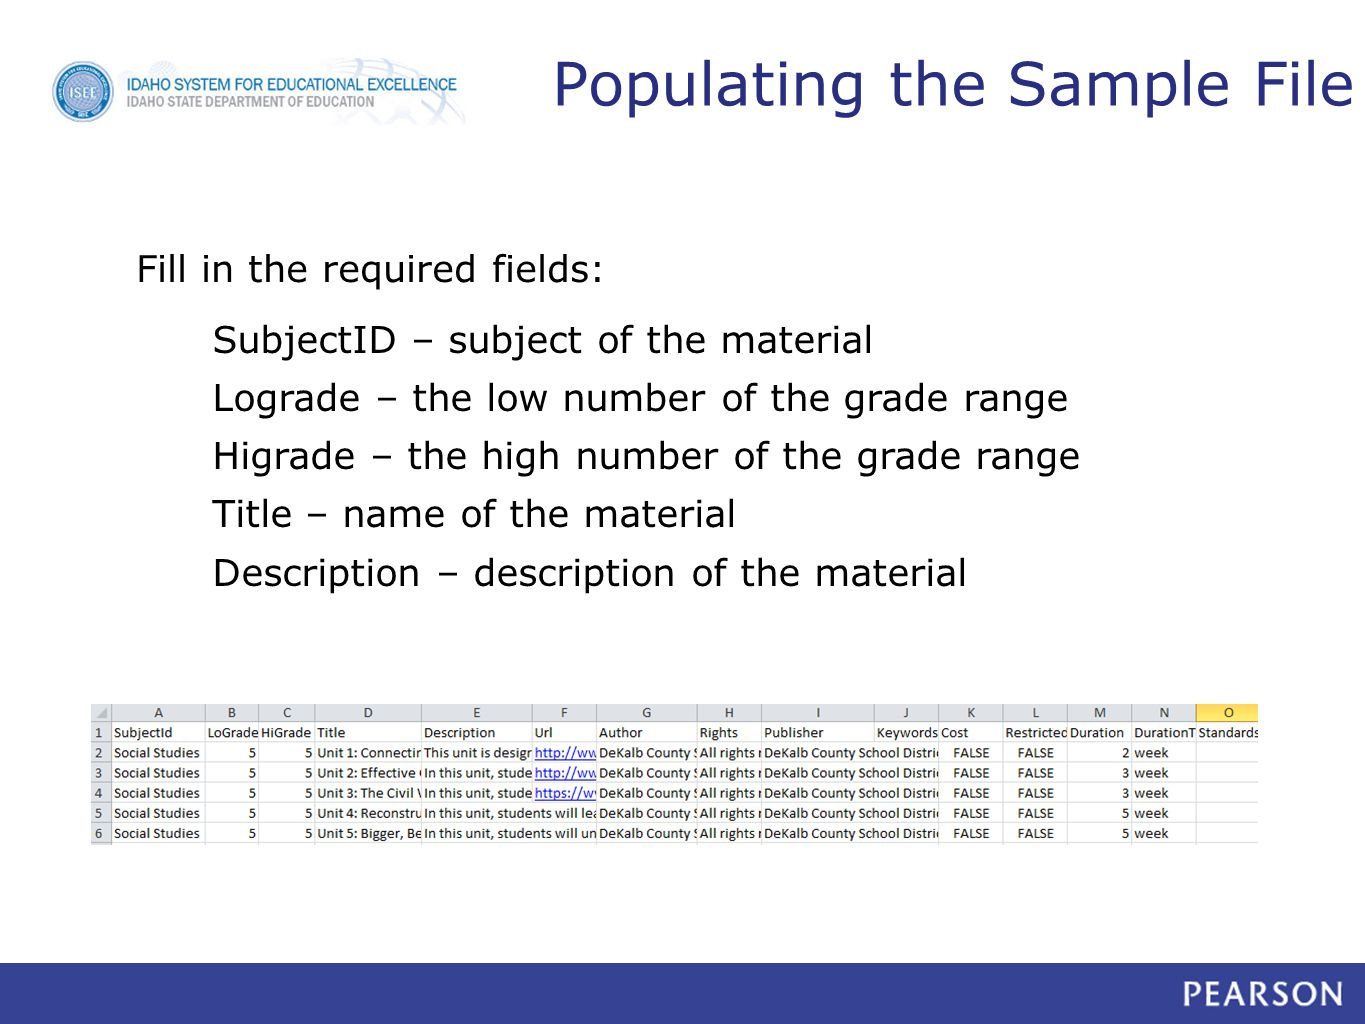 Populating the Sample File SubjectID – subject of the material Lograde – the low number of the grade range Higrade – the high number of the grade range Title – name of the material Description – description of the material Fill in the required fields: